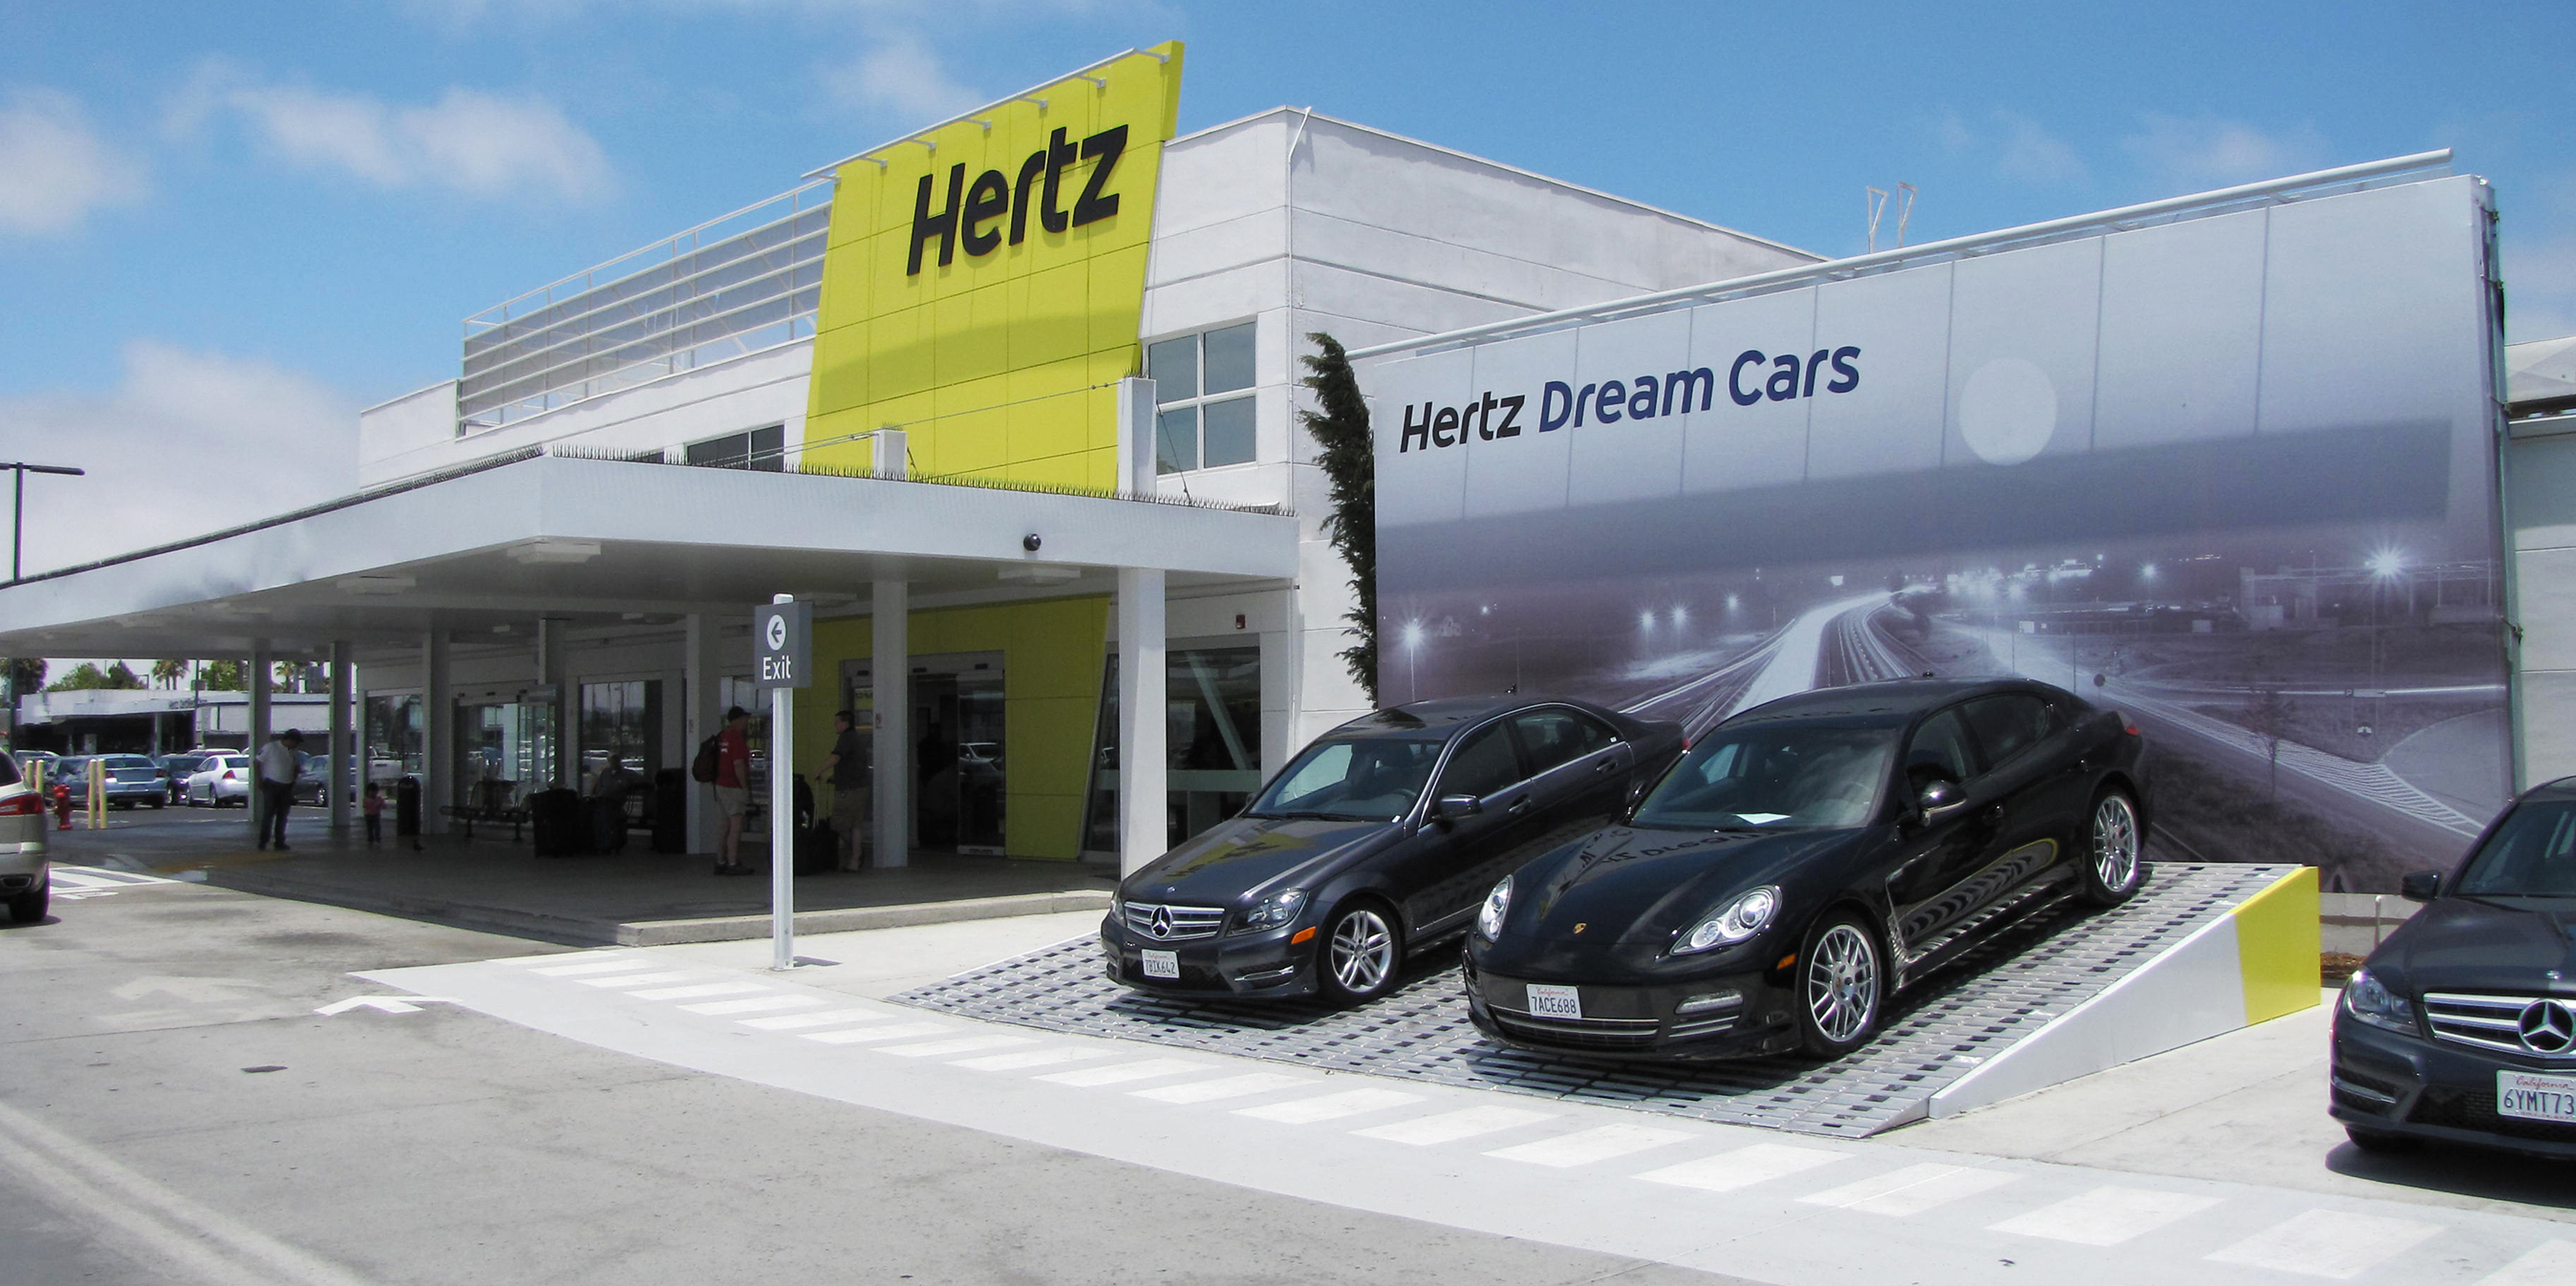 Dublin Airport Rental Car Return Hertz